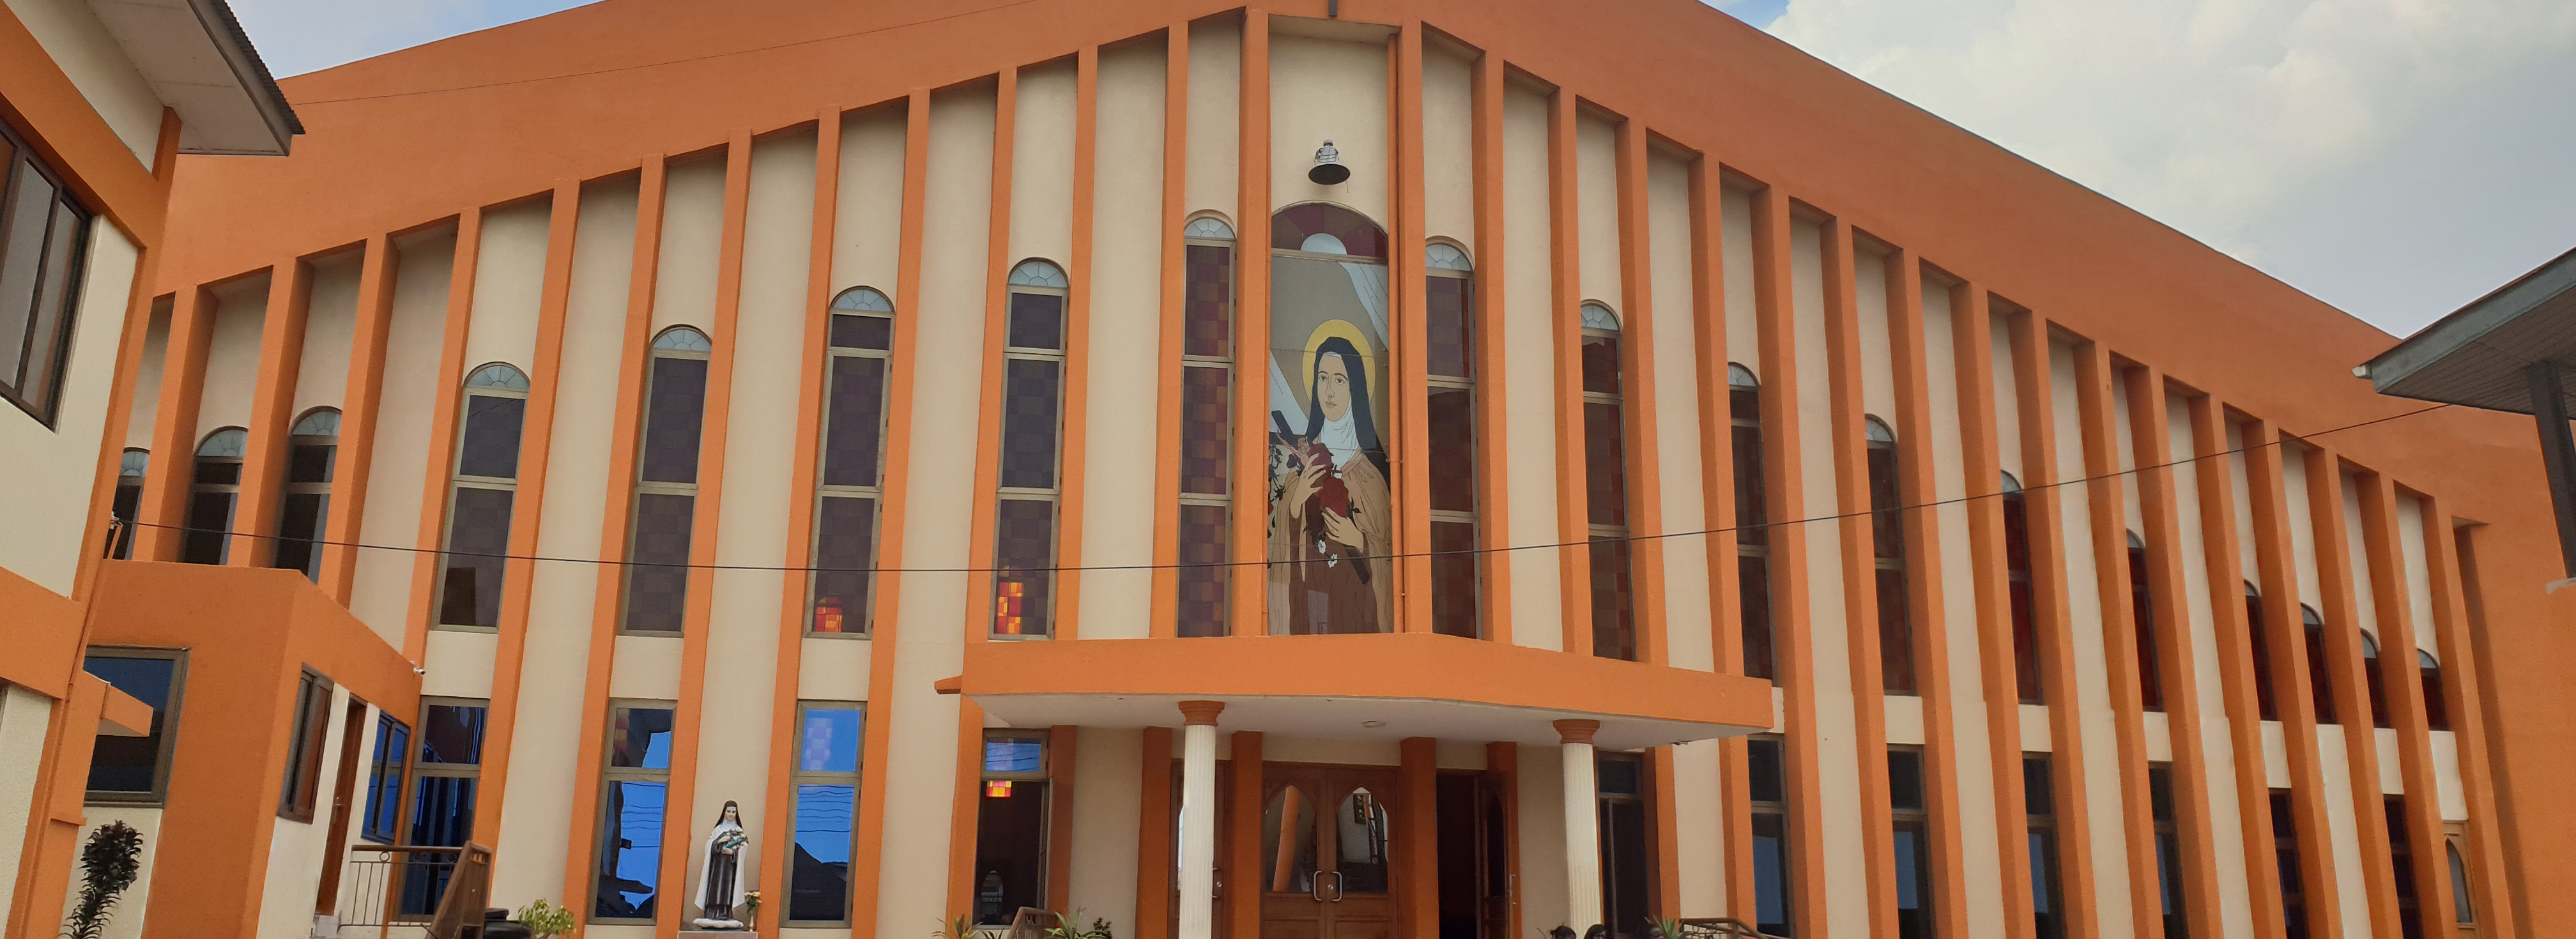 St Theresa Church frontage